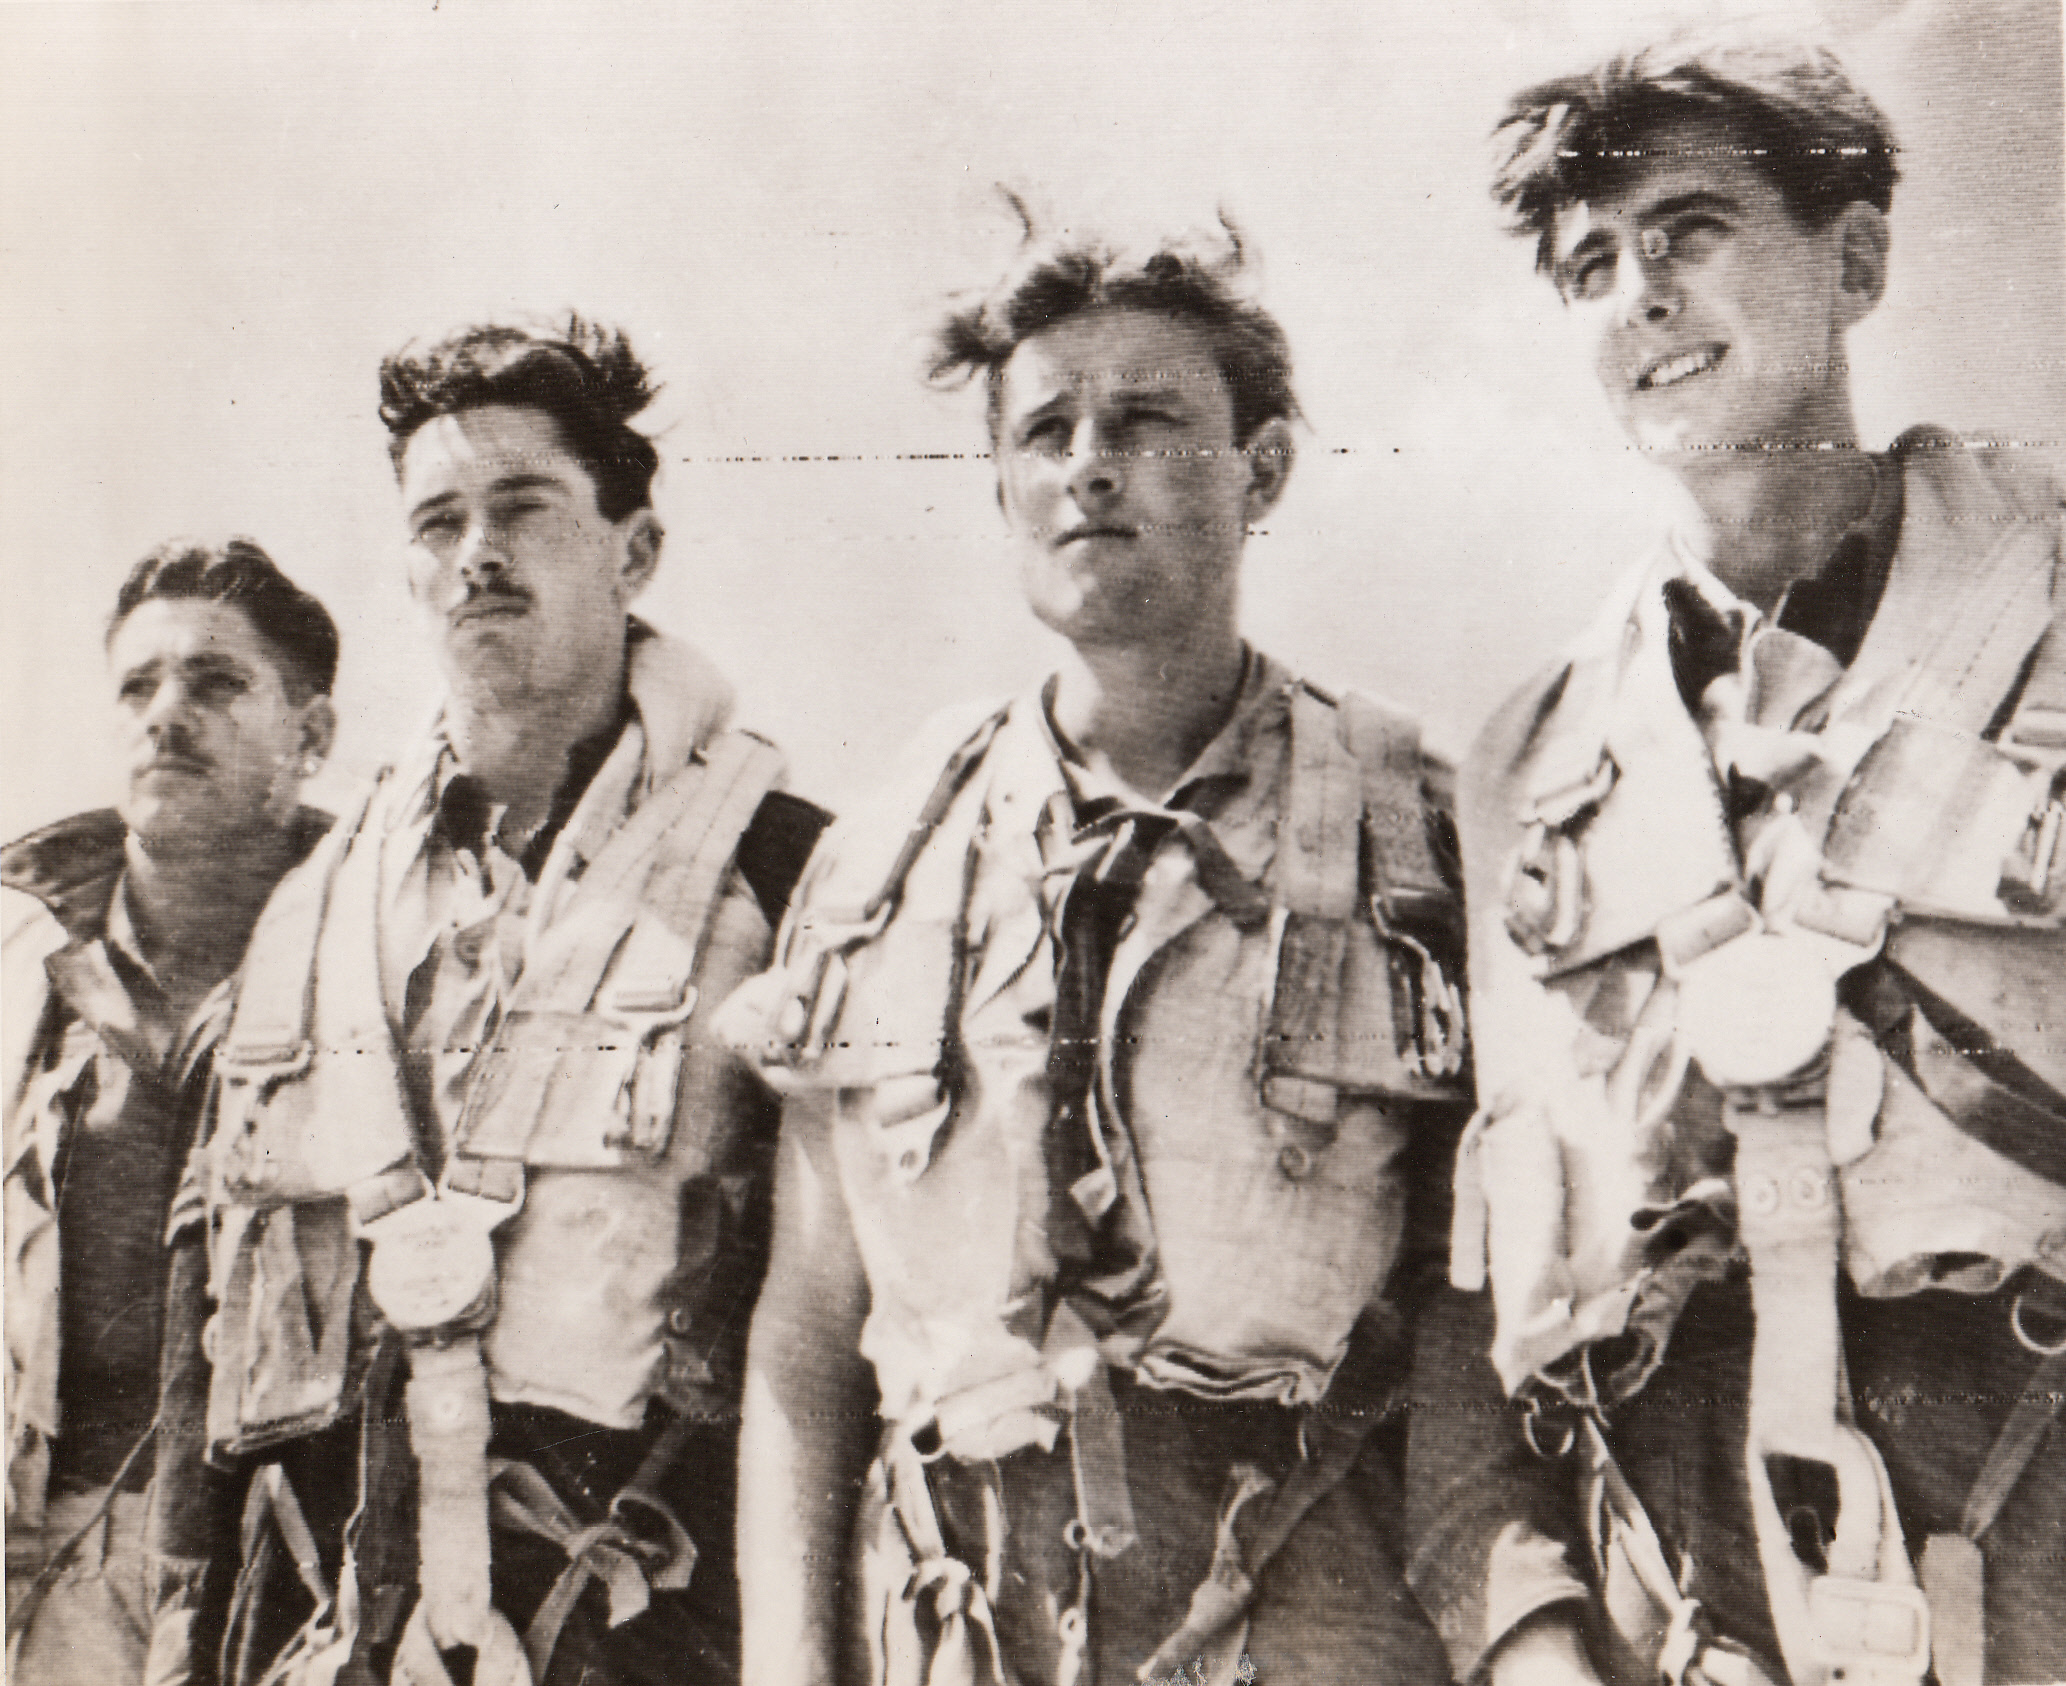 Flew Supplies to Warsaw Patriots, 8/23/1944. ITALY – Back at their base in Italy are these four members of an RAF Liberator crew who recently flew from Italy to Warsaw and back to drop supplies to patriots battling the Nazis in the Polish capitol. They are (left to right): F/S Kenneth Pearce, Sgt. Peter Green, Sgt. Derek Coates, and Sgt. John Rush.;